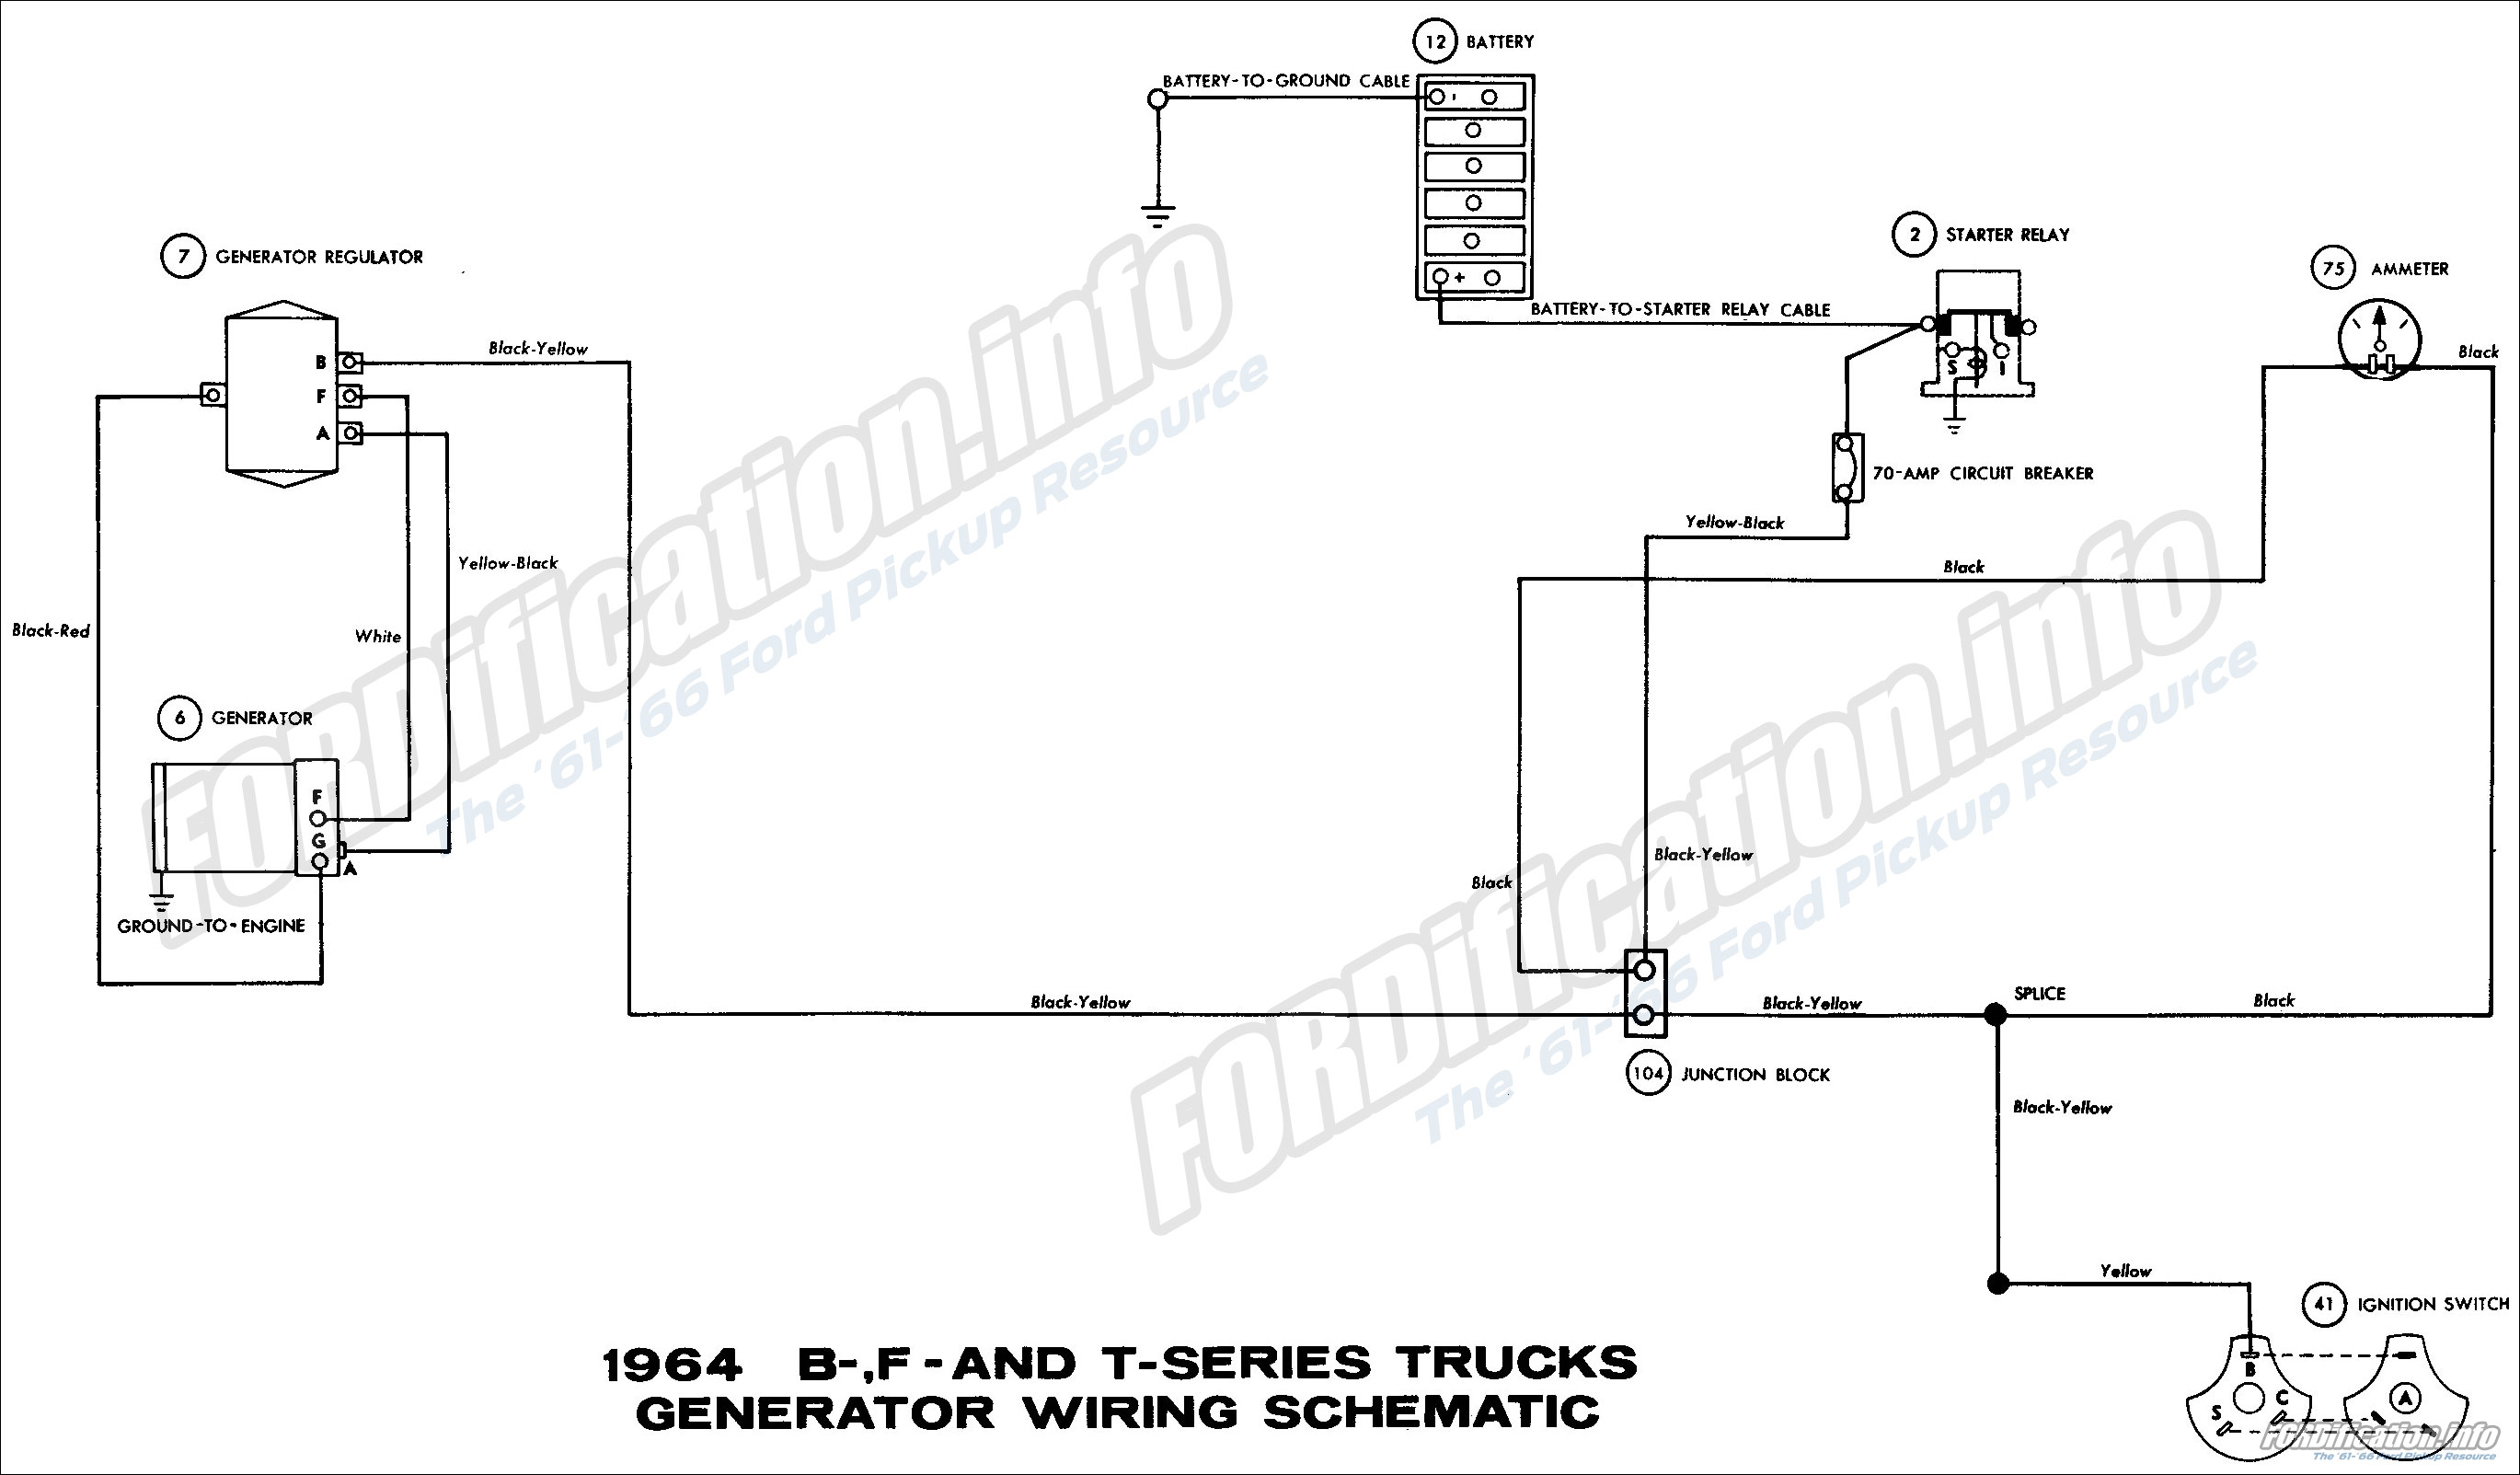 Ford F150 Generator Wiring Diagram Books Of 1964 Truck Diagrams Fordification Info The 61 66 Rh